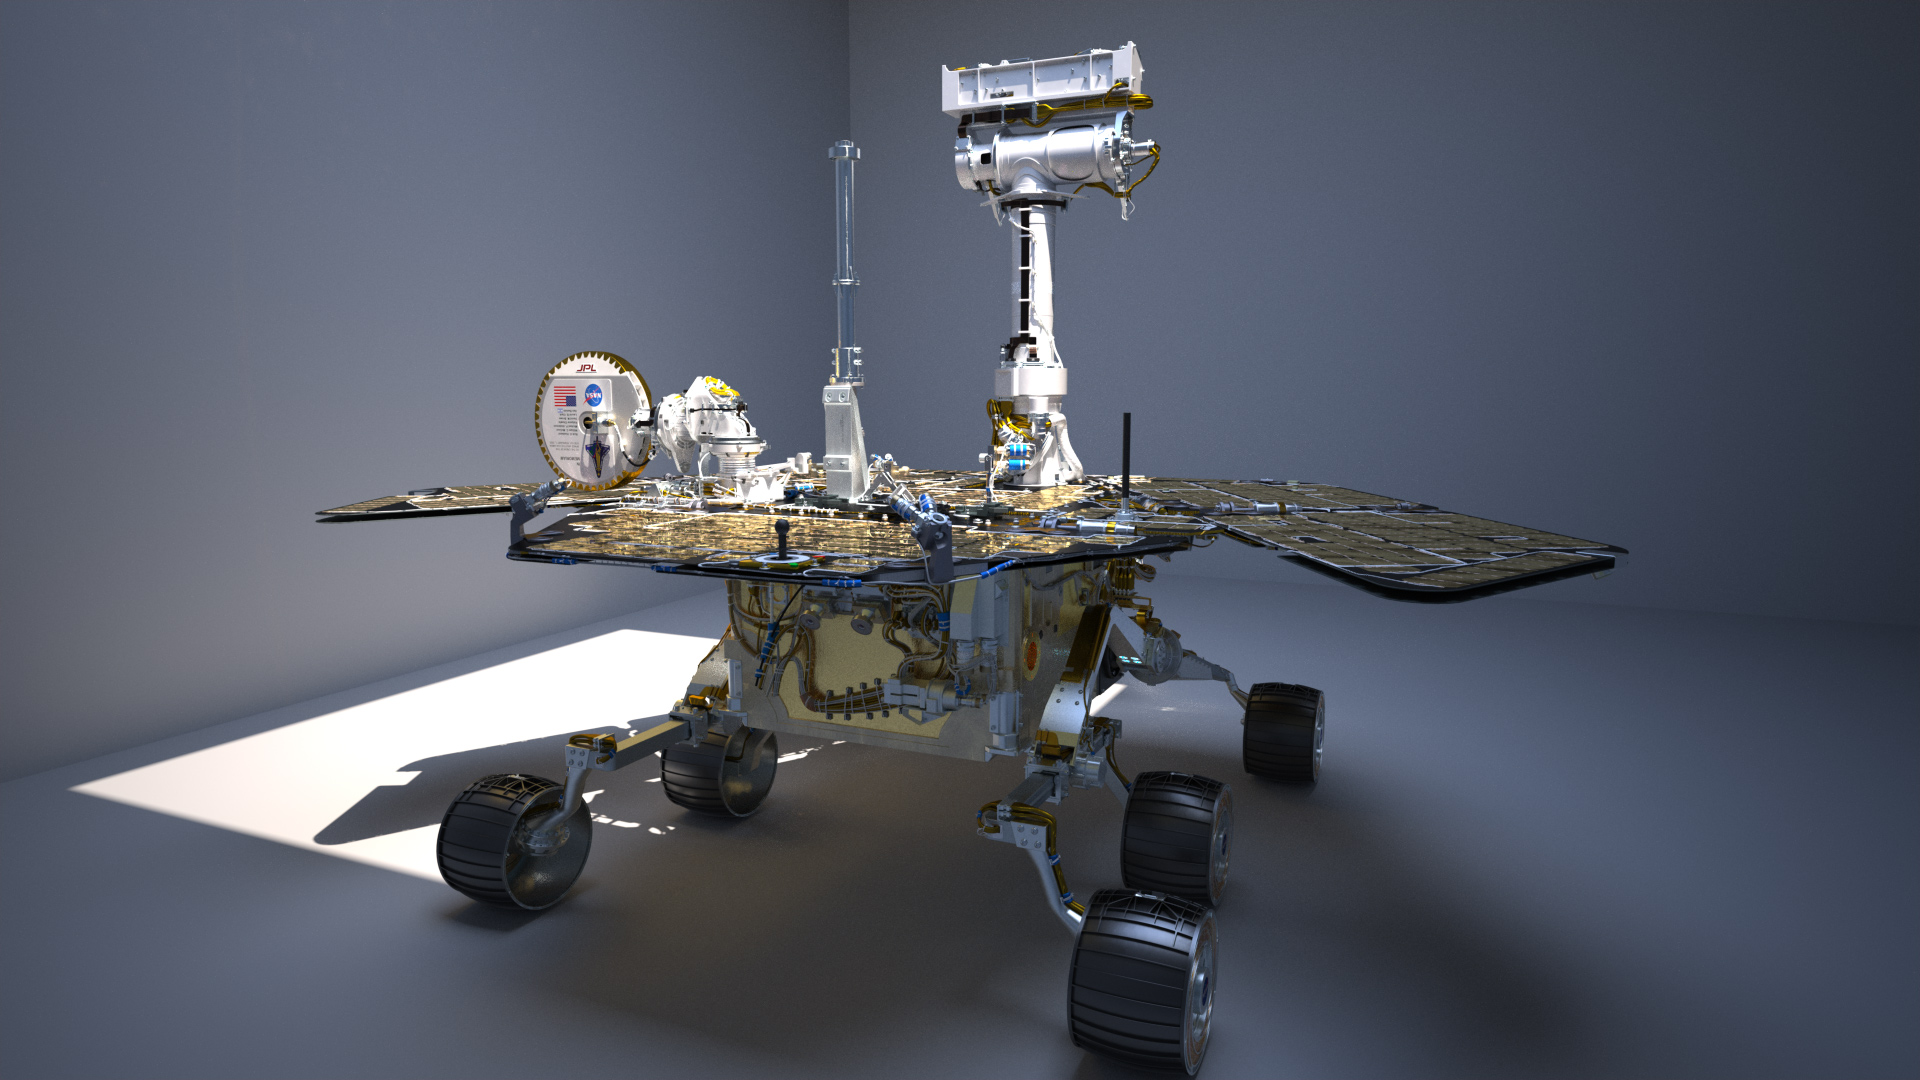 Incredible digital re-creations of the Mars rovers